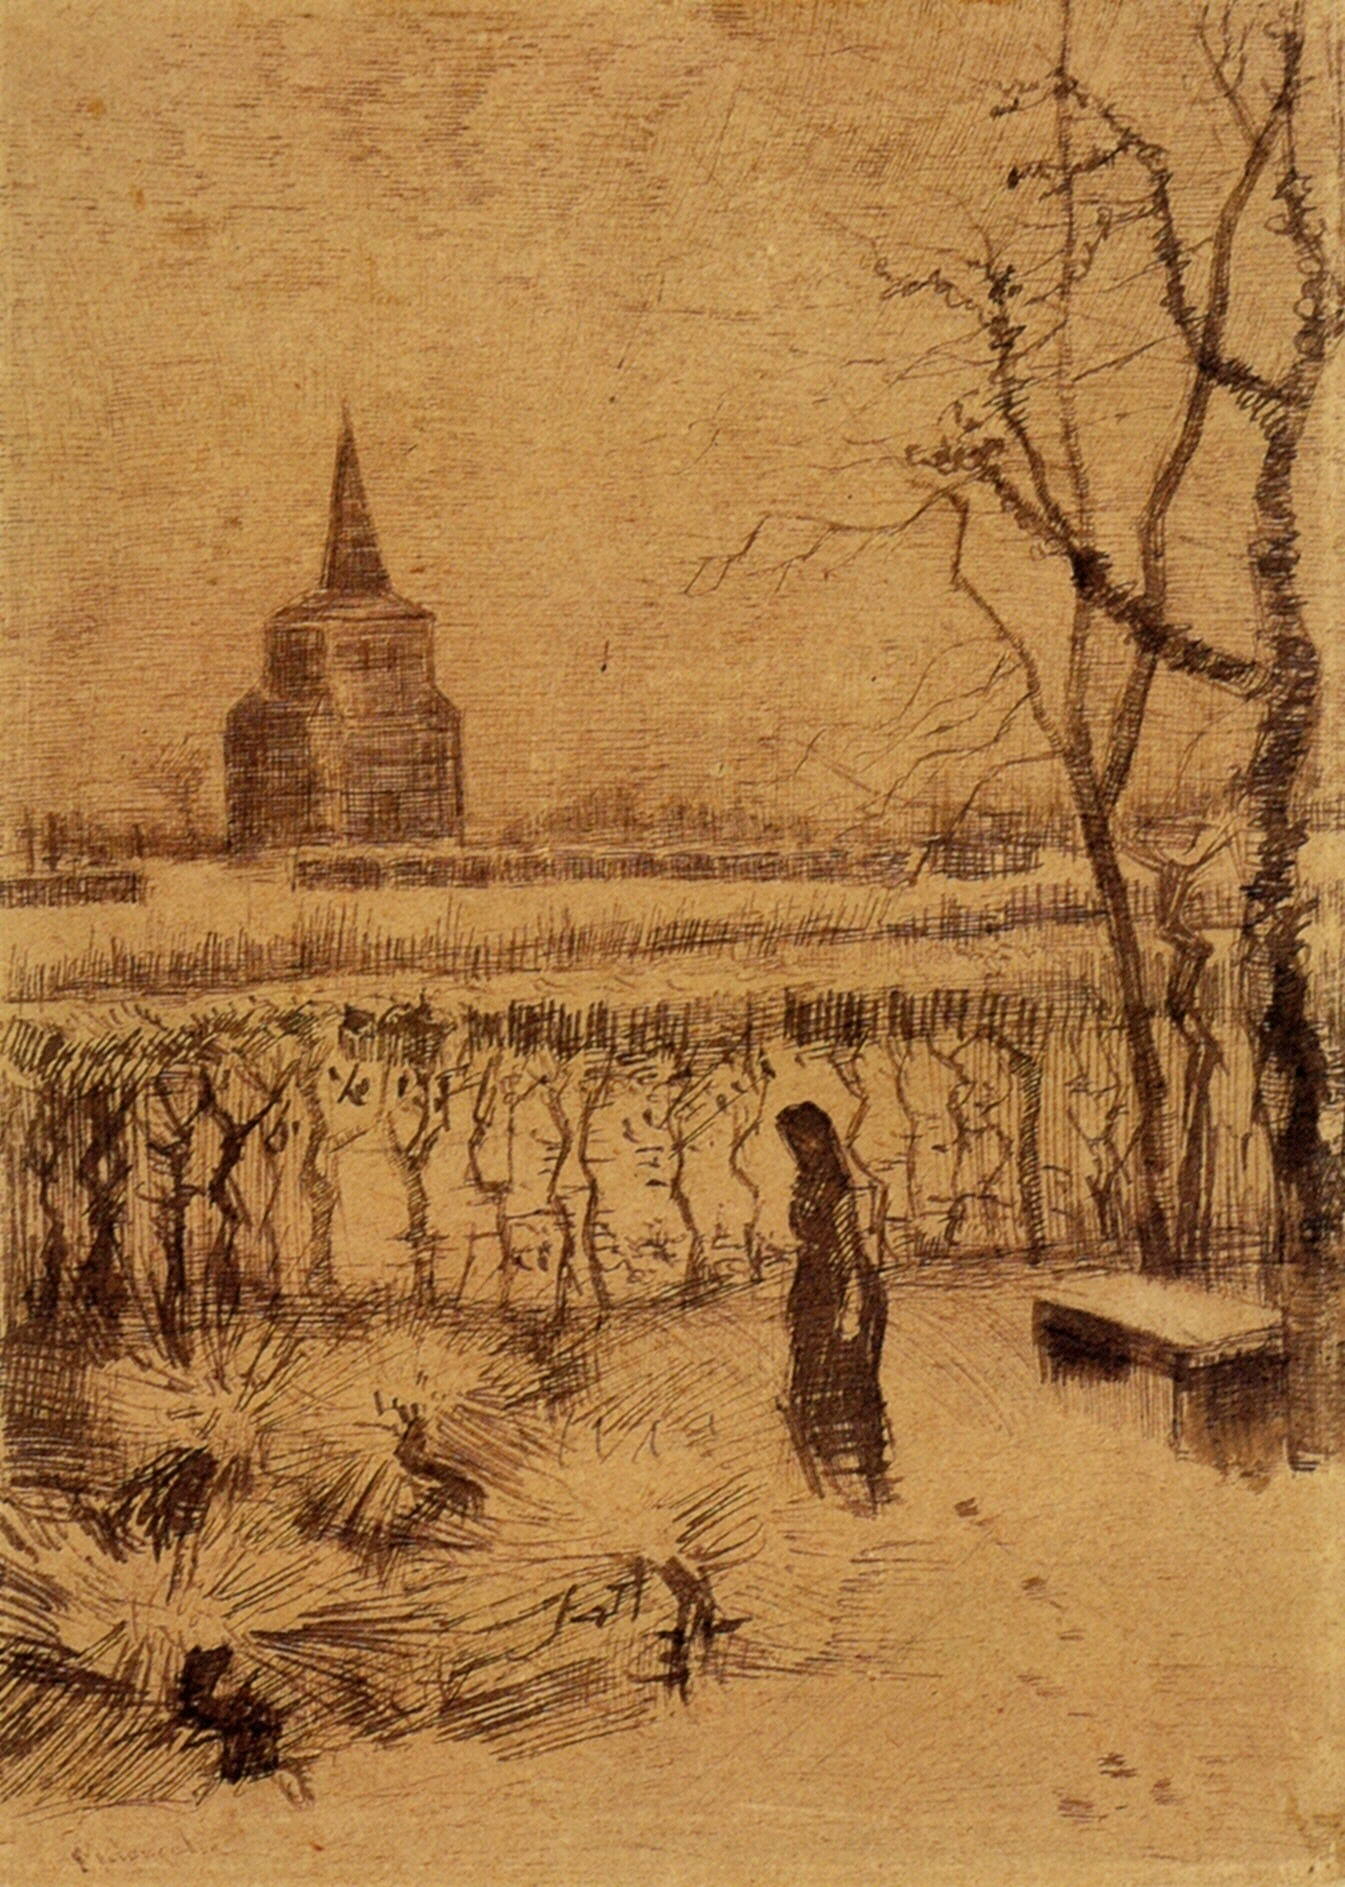 a paper on life and works of vincent van gogh Think jar collective a lesson in creative thinking from vincent van gogh completing many of his best-known works during the last two years of his life.